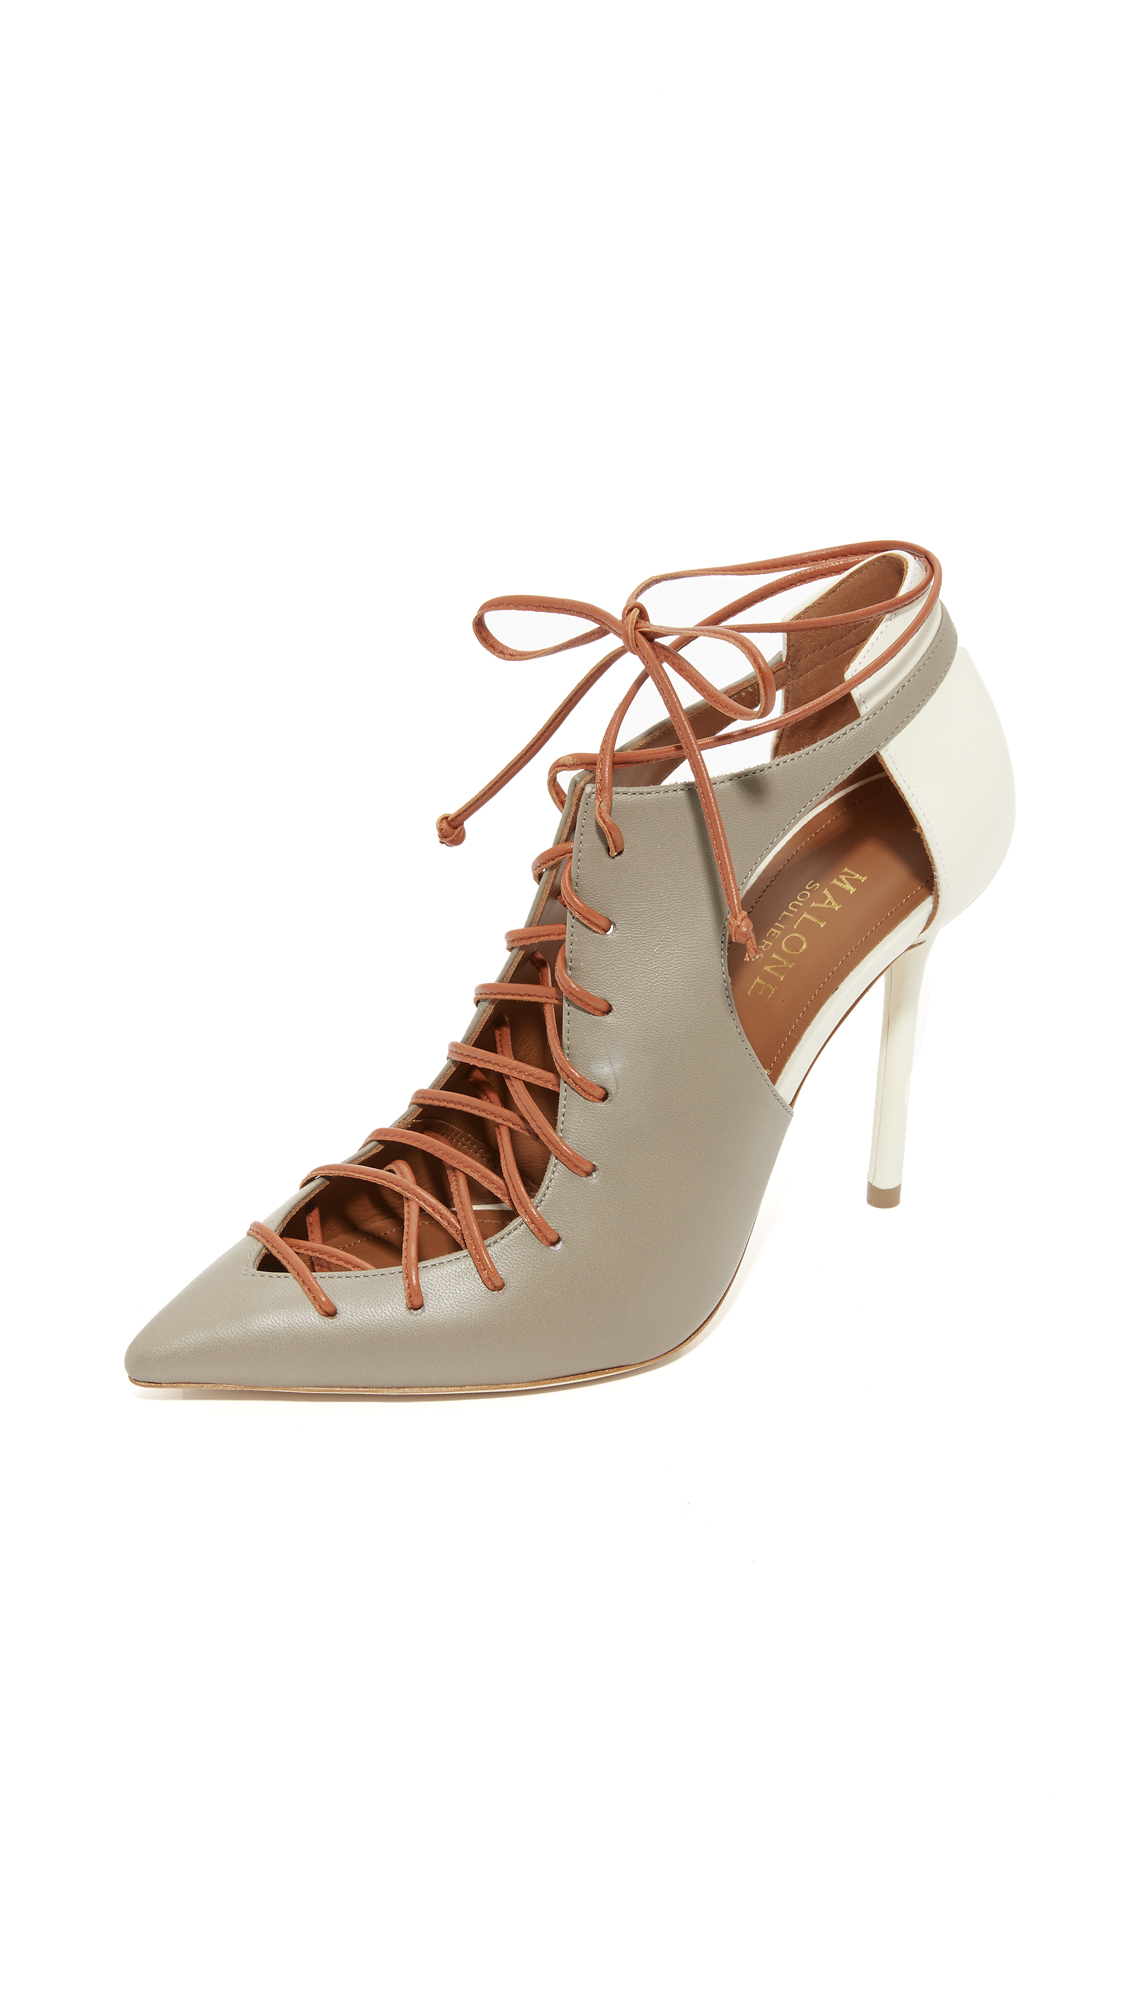 Malone Souliers Montana Lace Up Pumps - Grey/White/Caramel